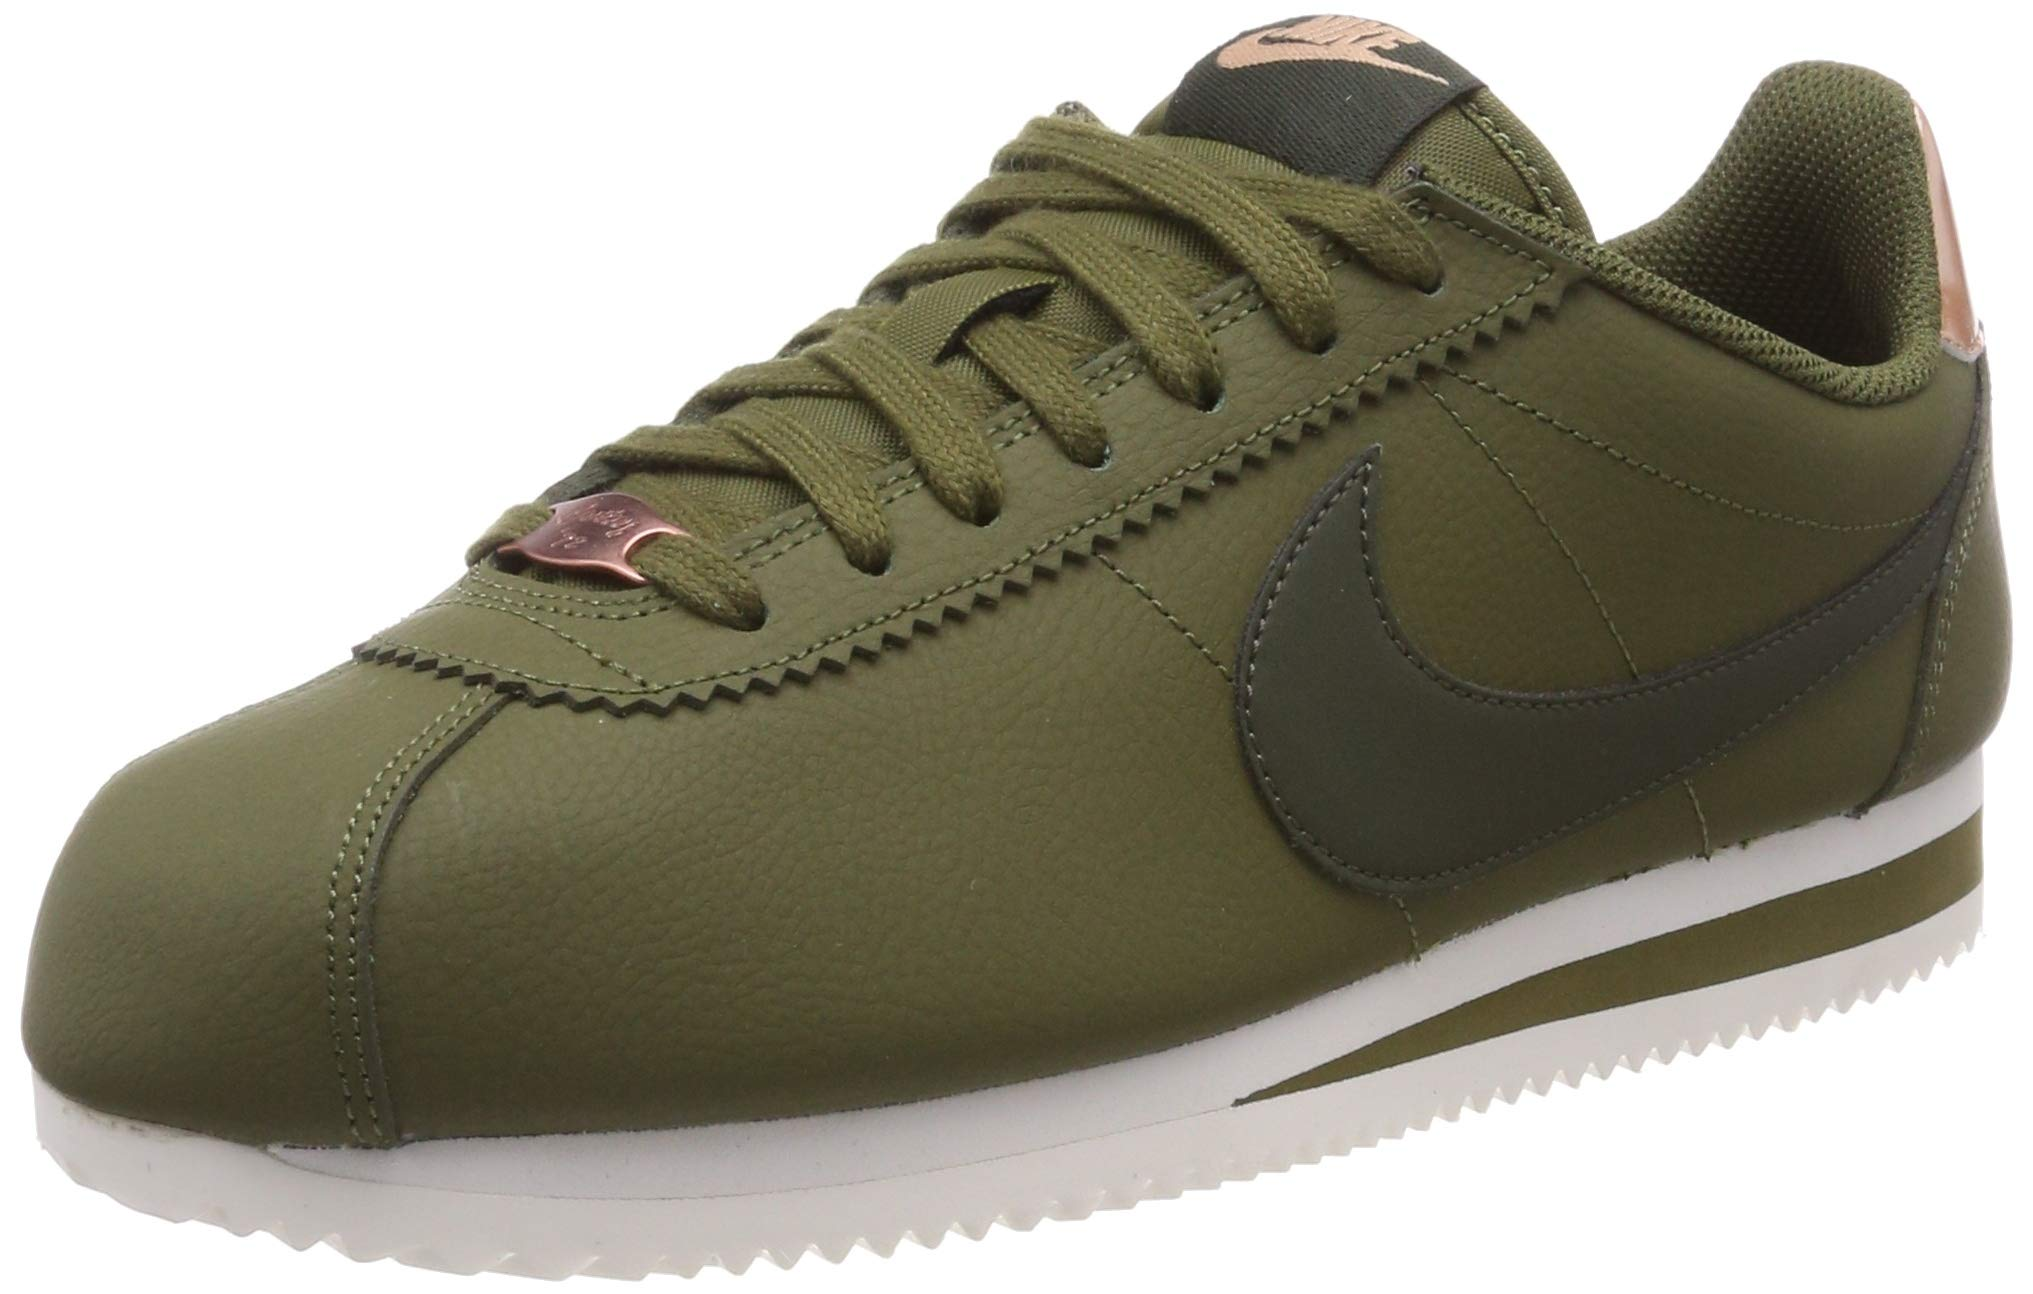 online store 3a3b2 d6968 Galleon - Nike Women s Classic Cortez Leather